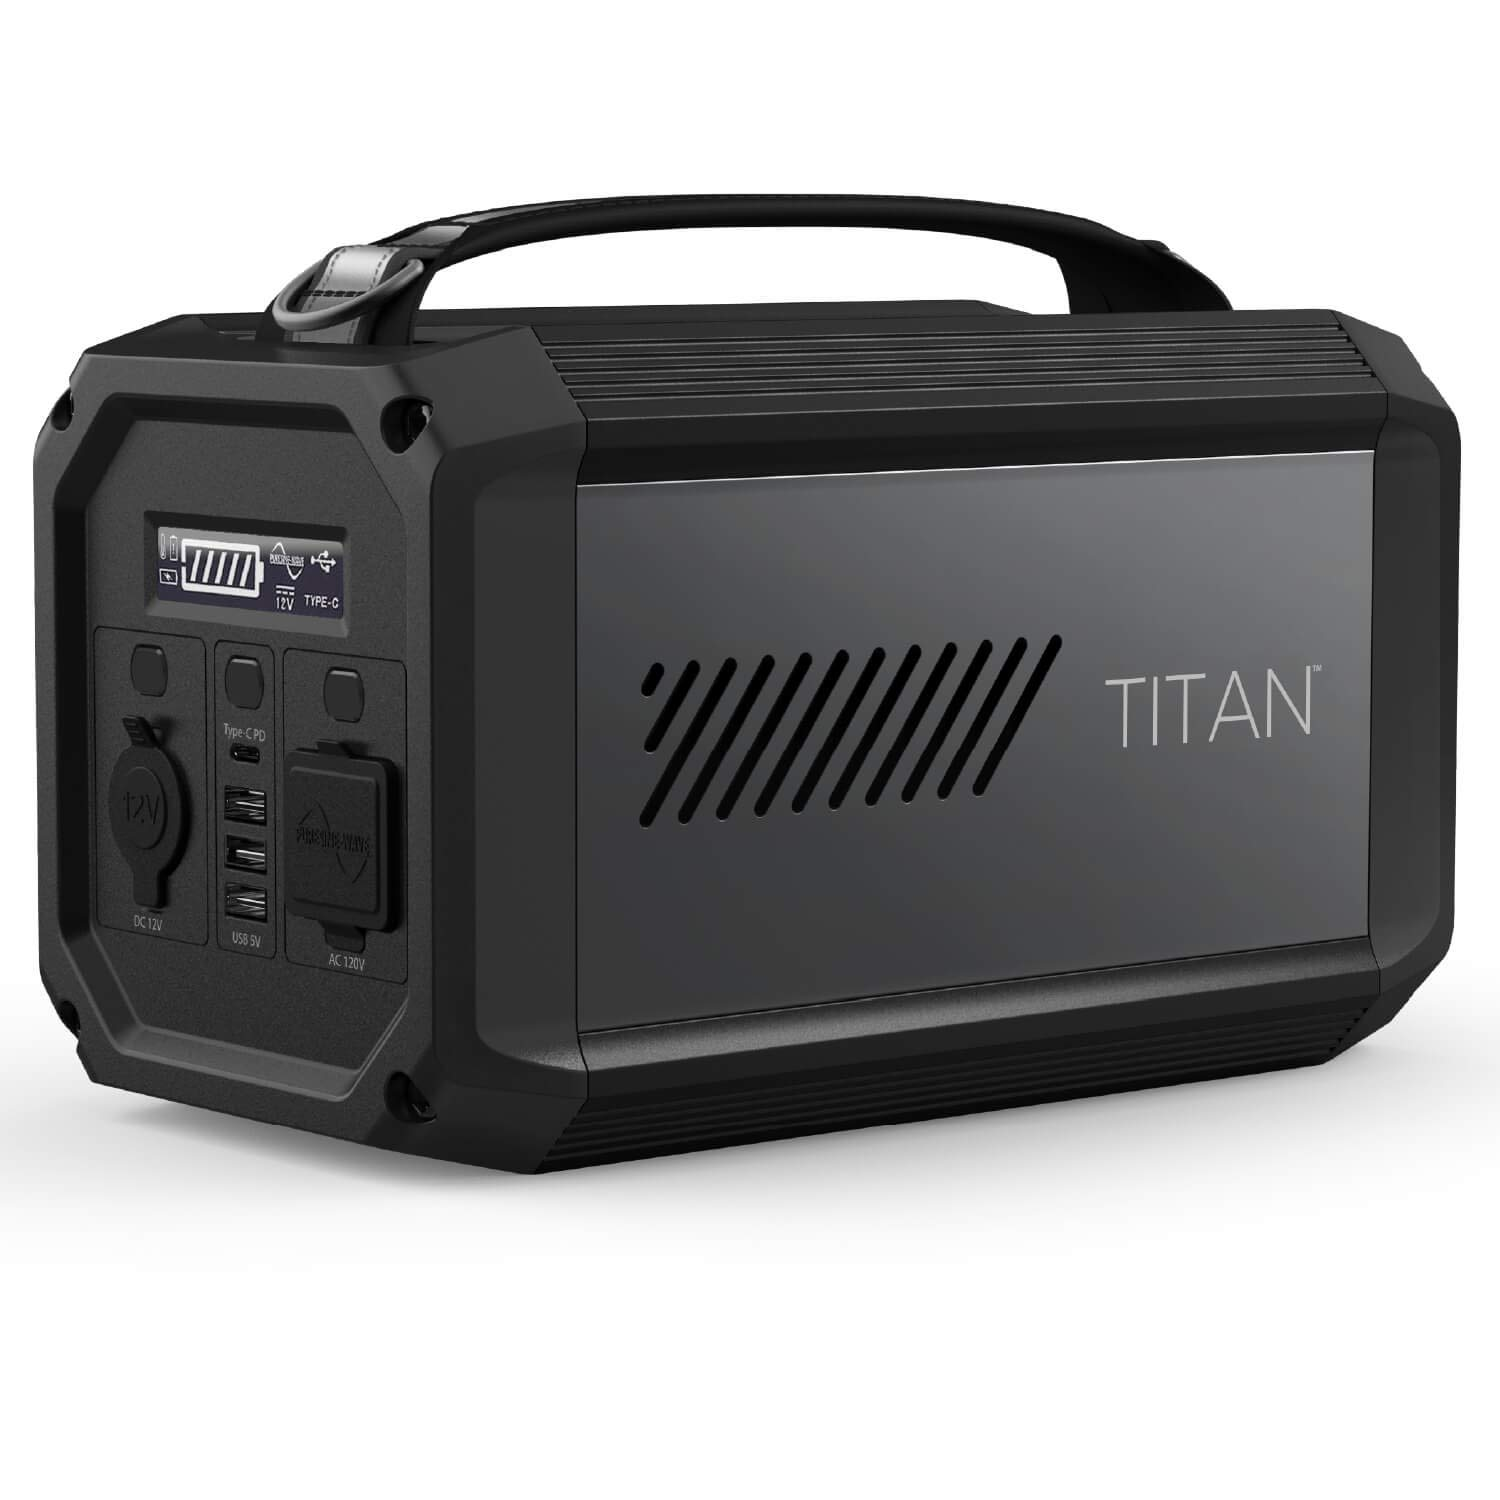 X-Doria Raptic Titan Portable Power Station (Formerly Defense Titan), 225Wh Backup Lithium Battery, Generator for Outdoors Camping Festivals Travel Emergency